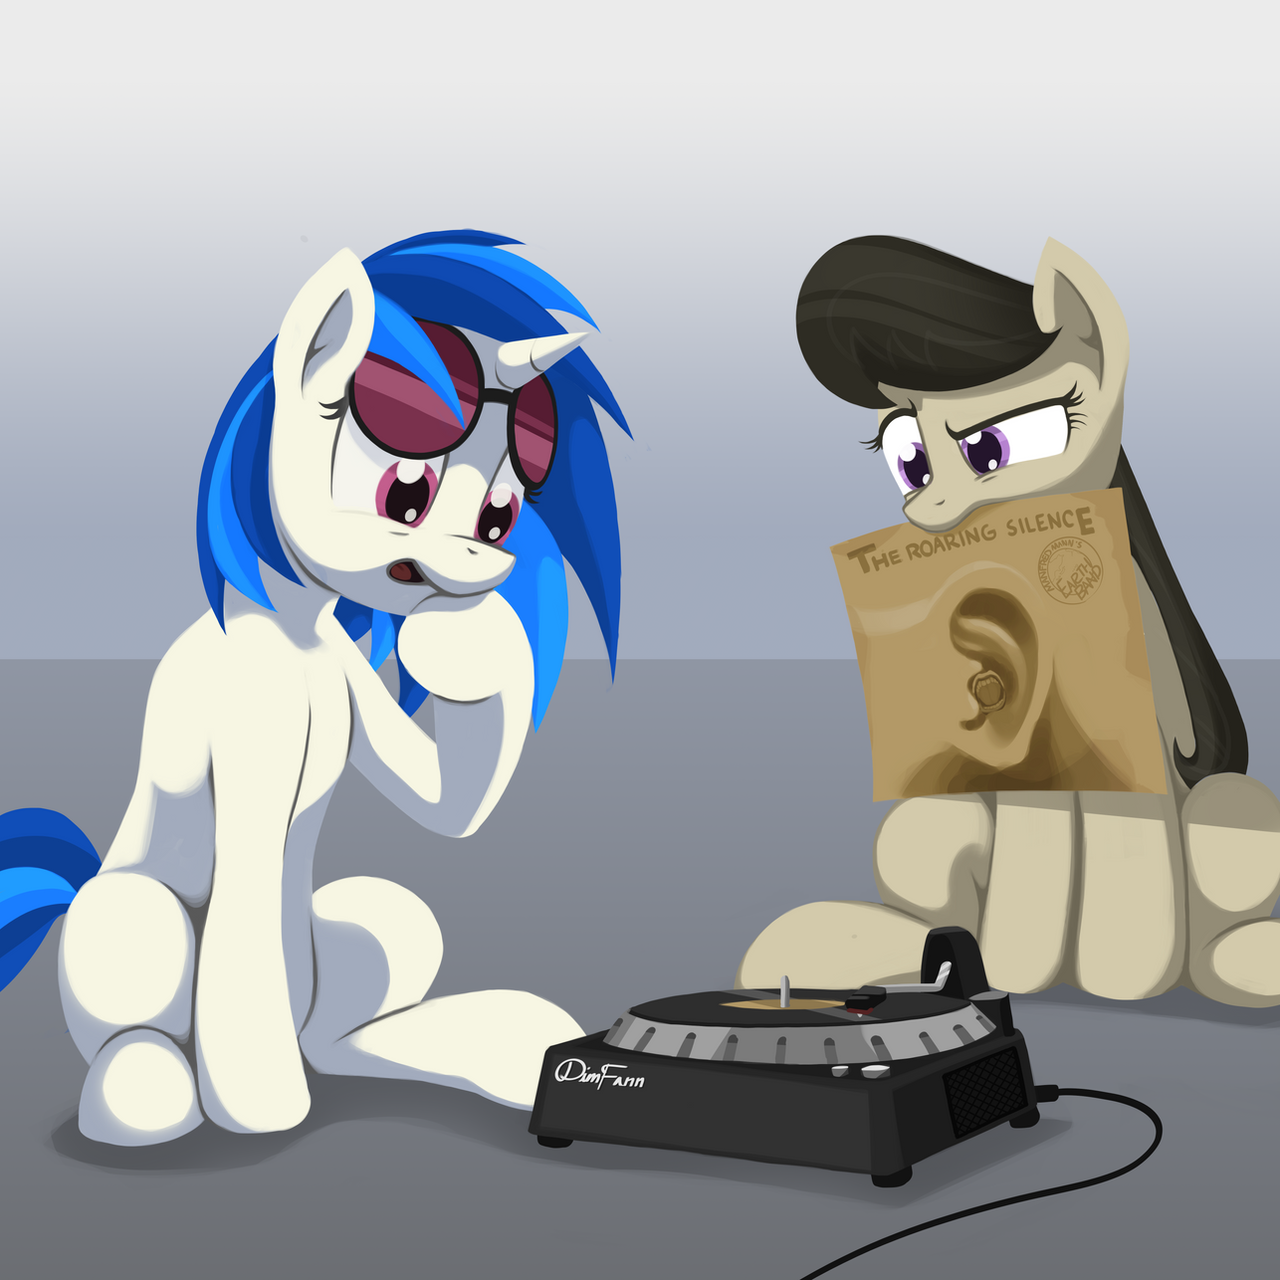 Vinyl Octavia And The Roaring Silence By Dimfann On